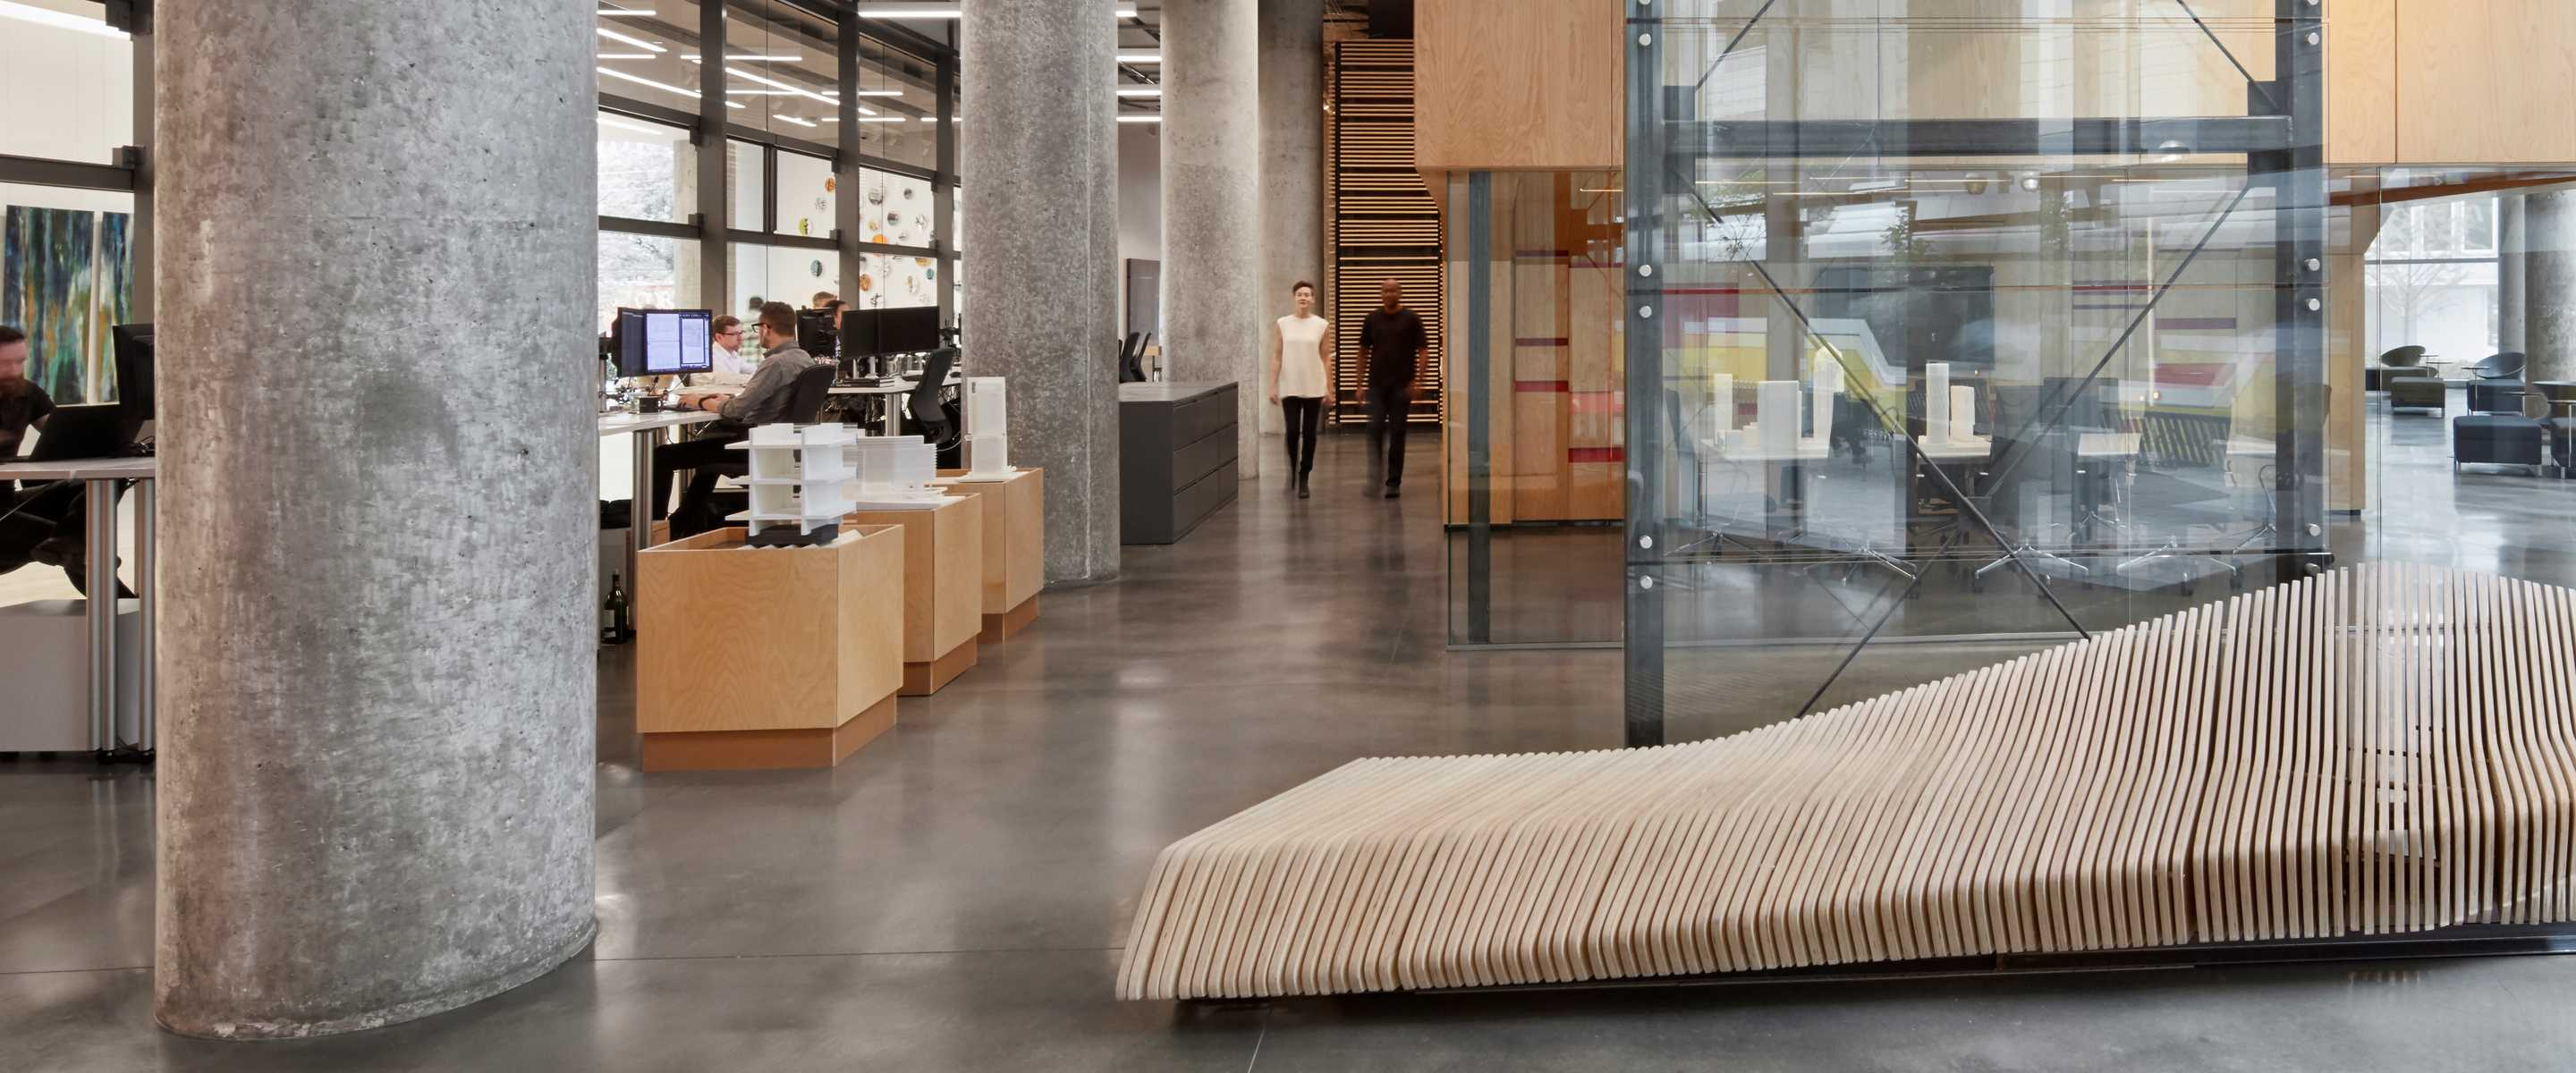 Two workers walking down corridor in stylish concrete and wood office